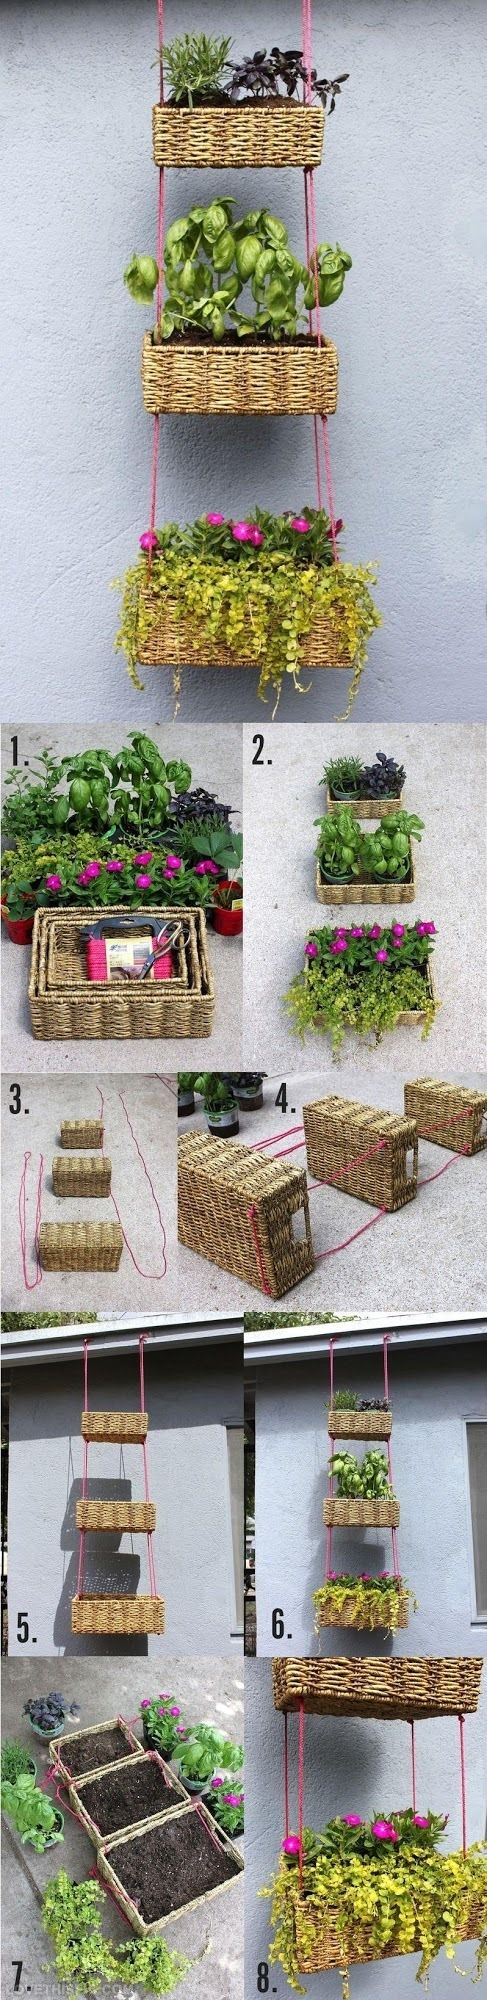 DIY // Hanging basket garden